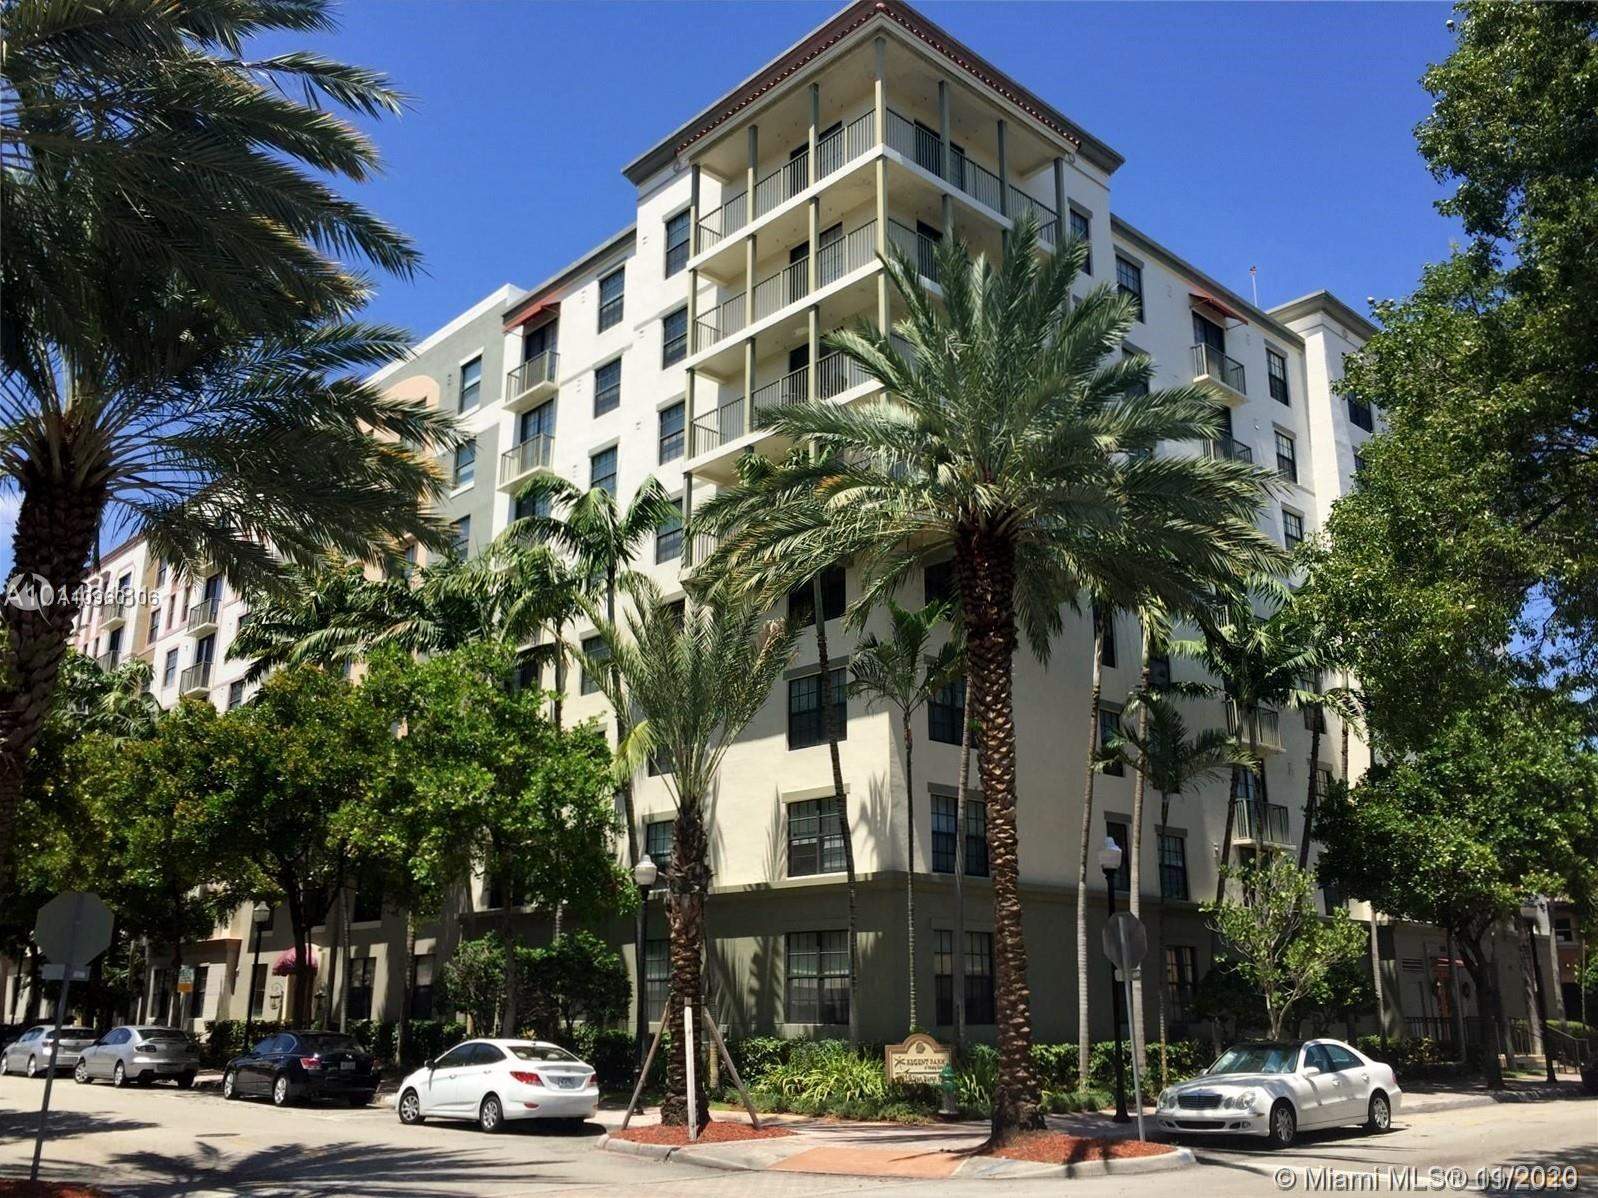 GORGEOUS CORNER UNIT ON TOP FLOOR, VERY SPACIOUS,BEST LOCATED UNIT IN BUILDING, SLIDING DOORS TO BAL